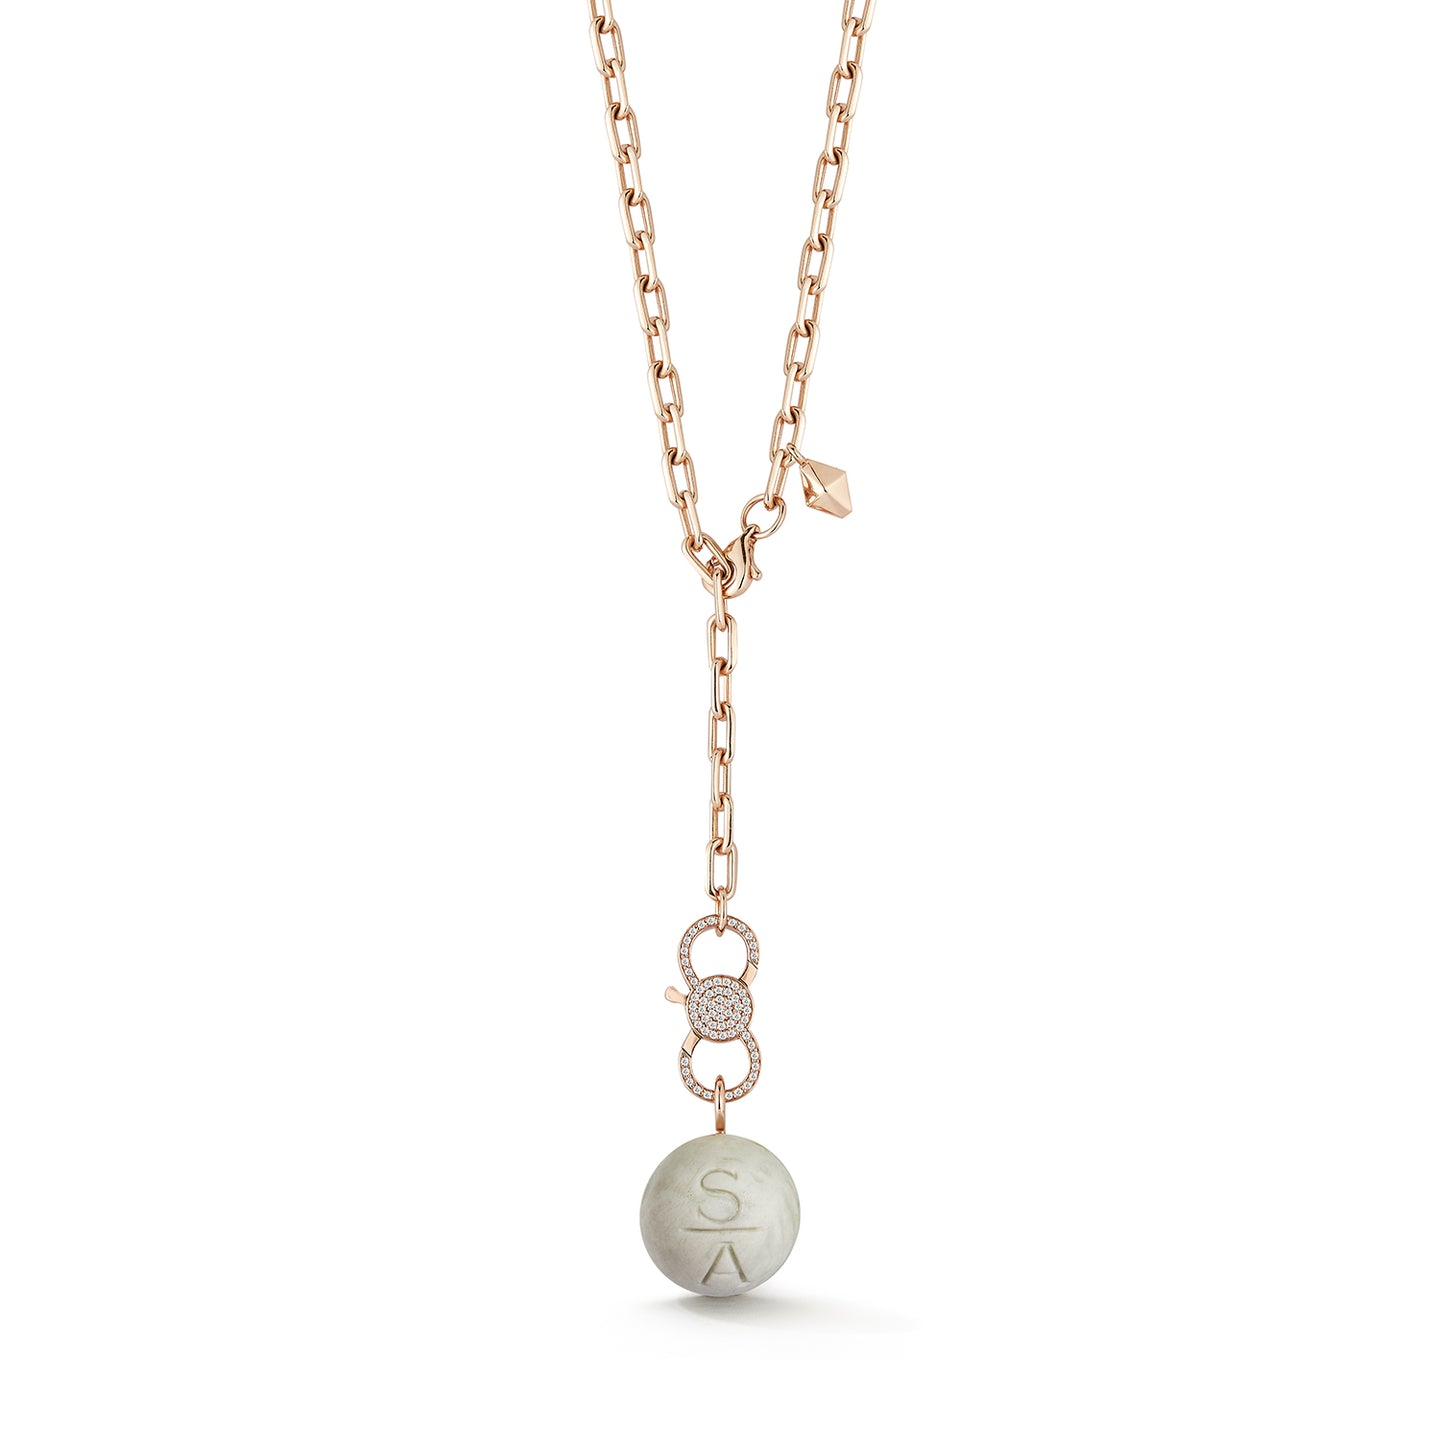 CW x WF 18K ROSE GOLD MARBLE BEAD AND DIAMOND ENHANCER CHARM NECKLACE